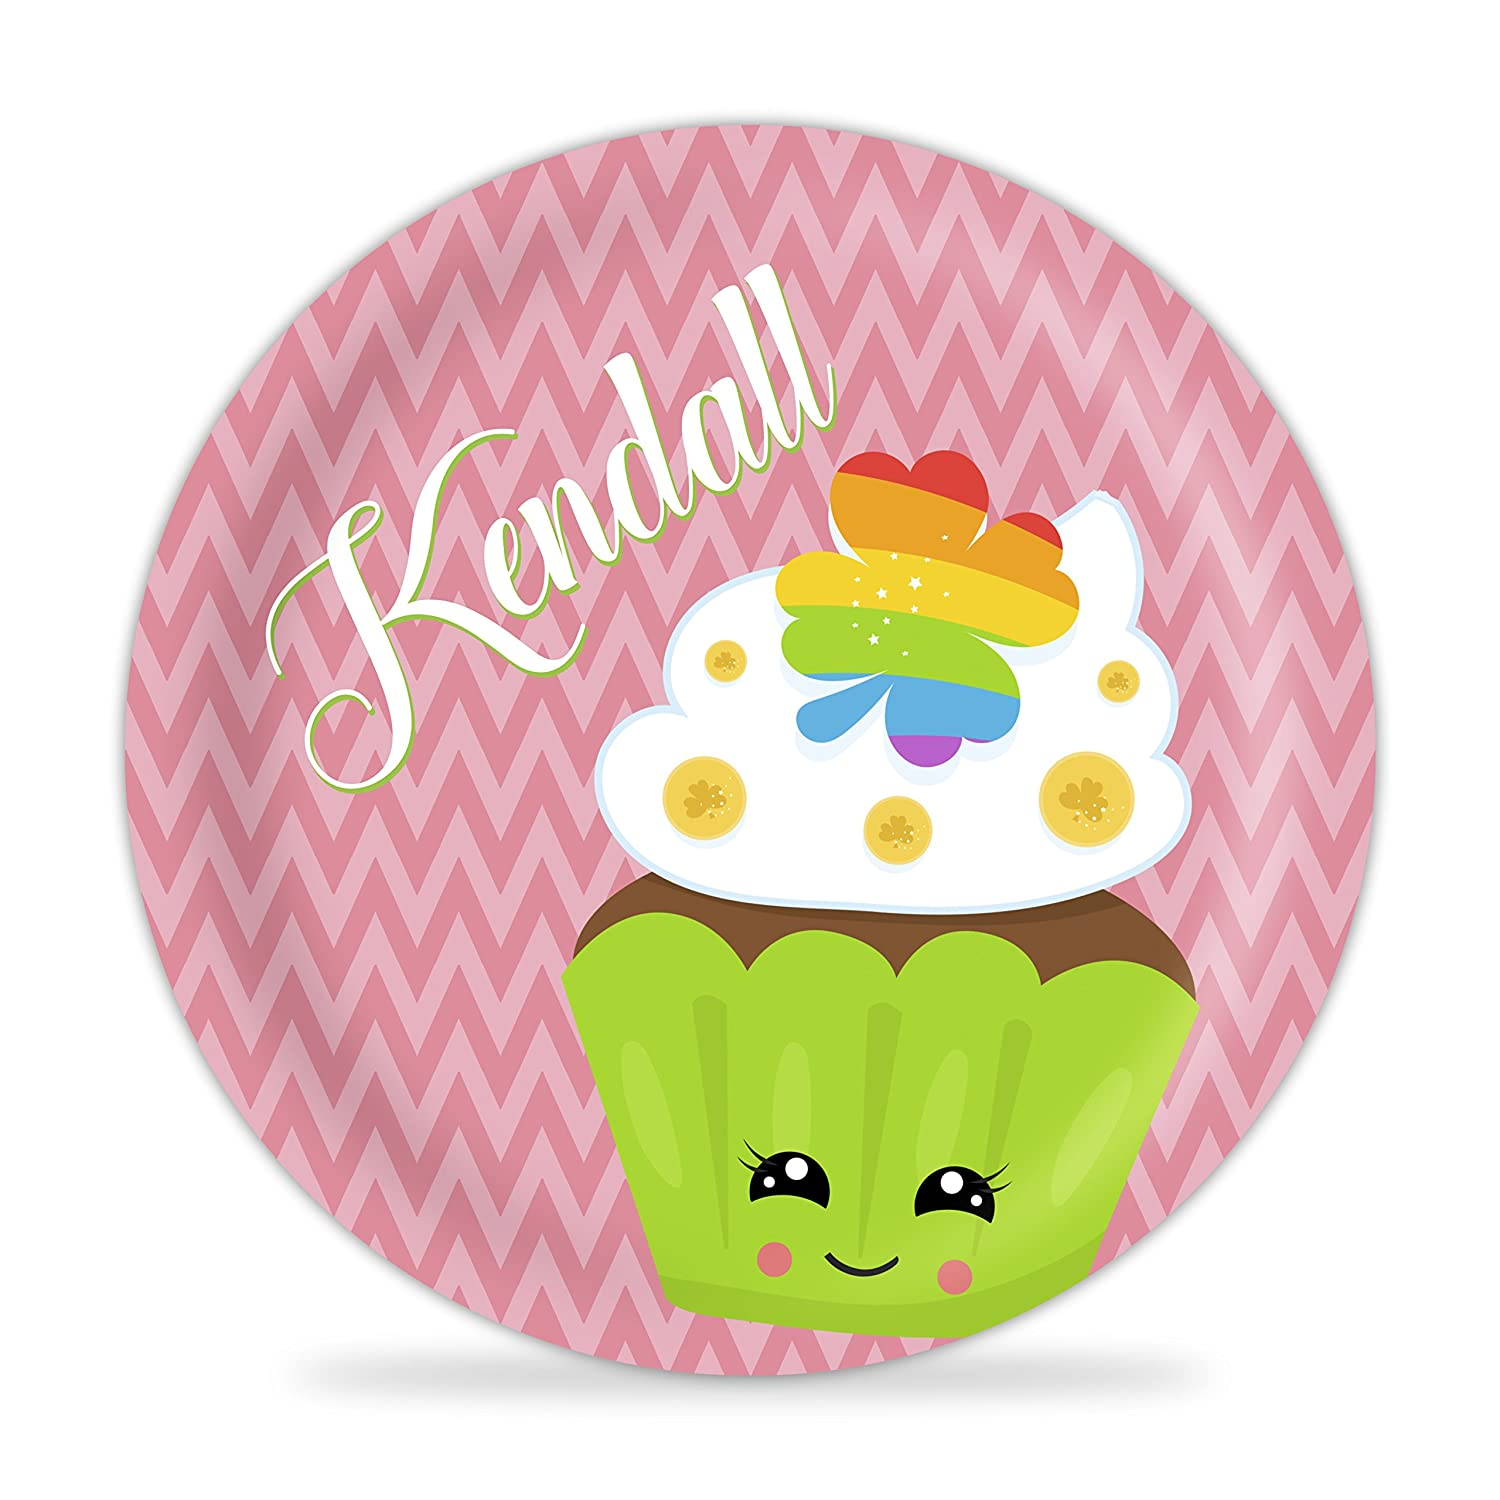 St Patricks Day Plate Green Dots St Pattys Day Cupcake Melamine Personalized Name Plate